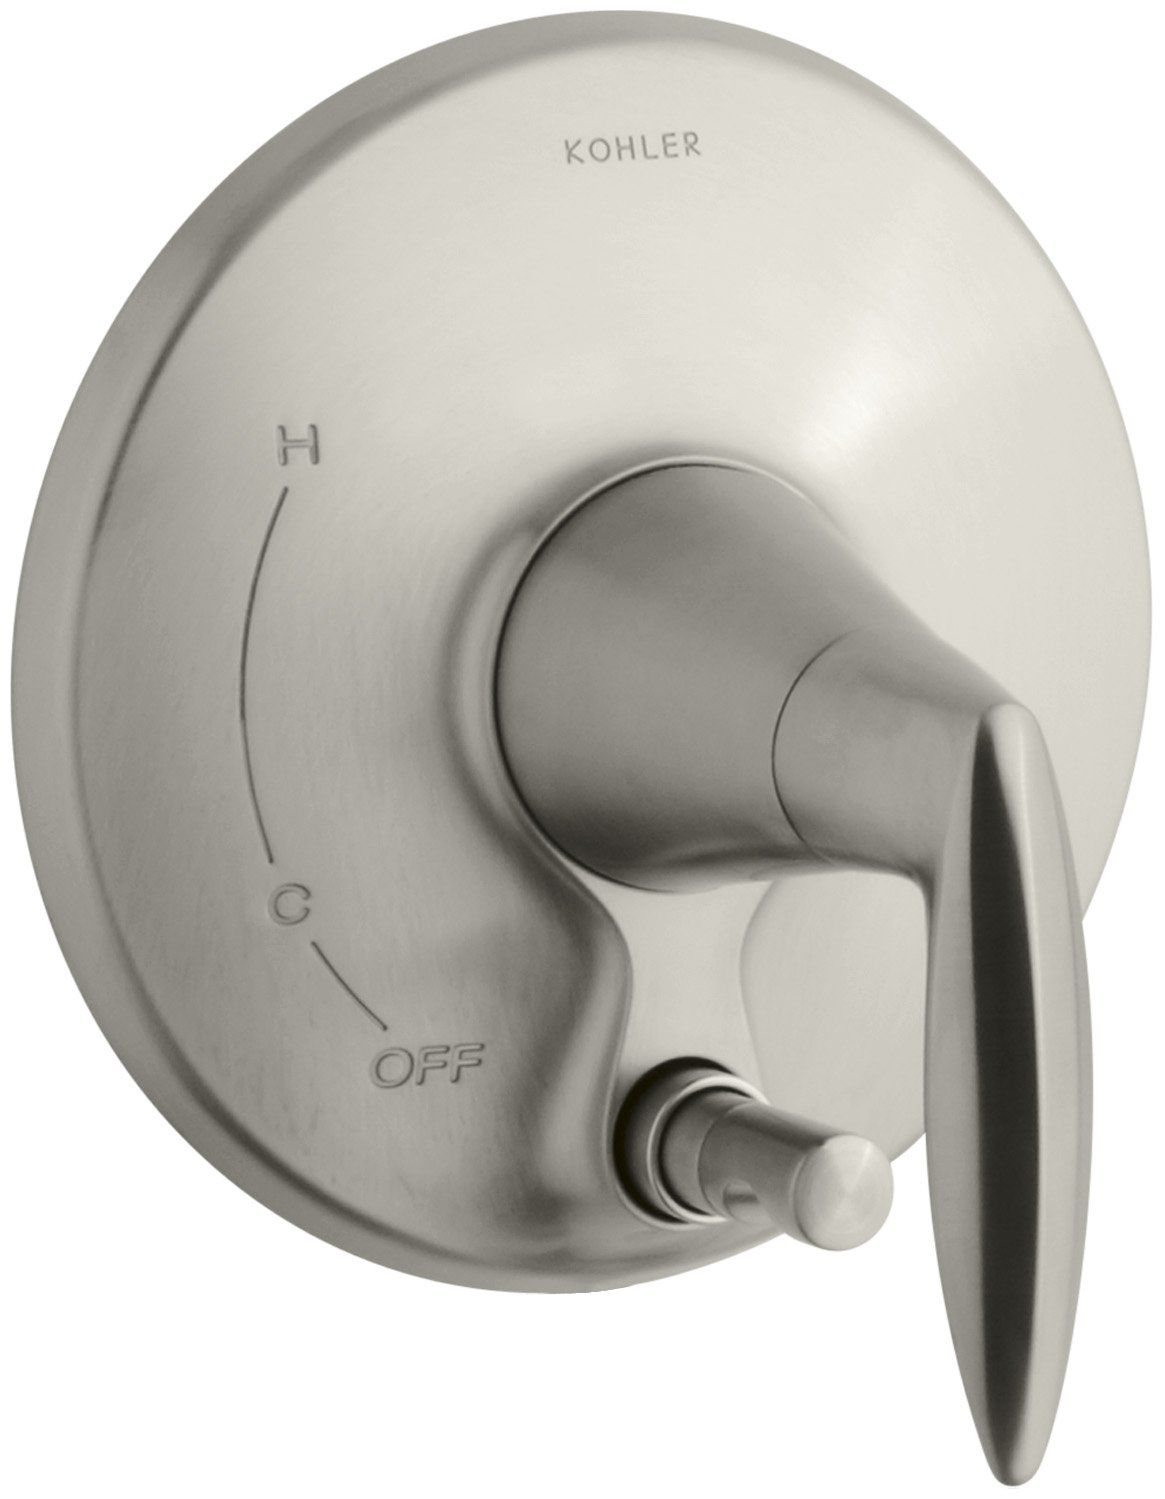 Kohler K-T45112-4-BN Vibrant Brushed Nickel